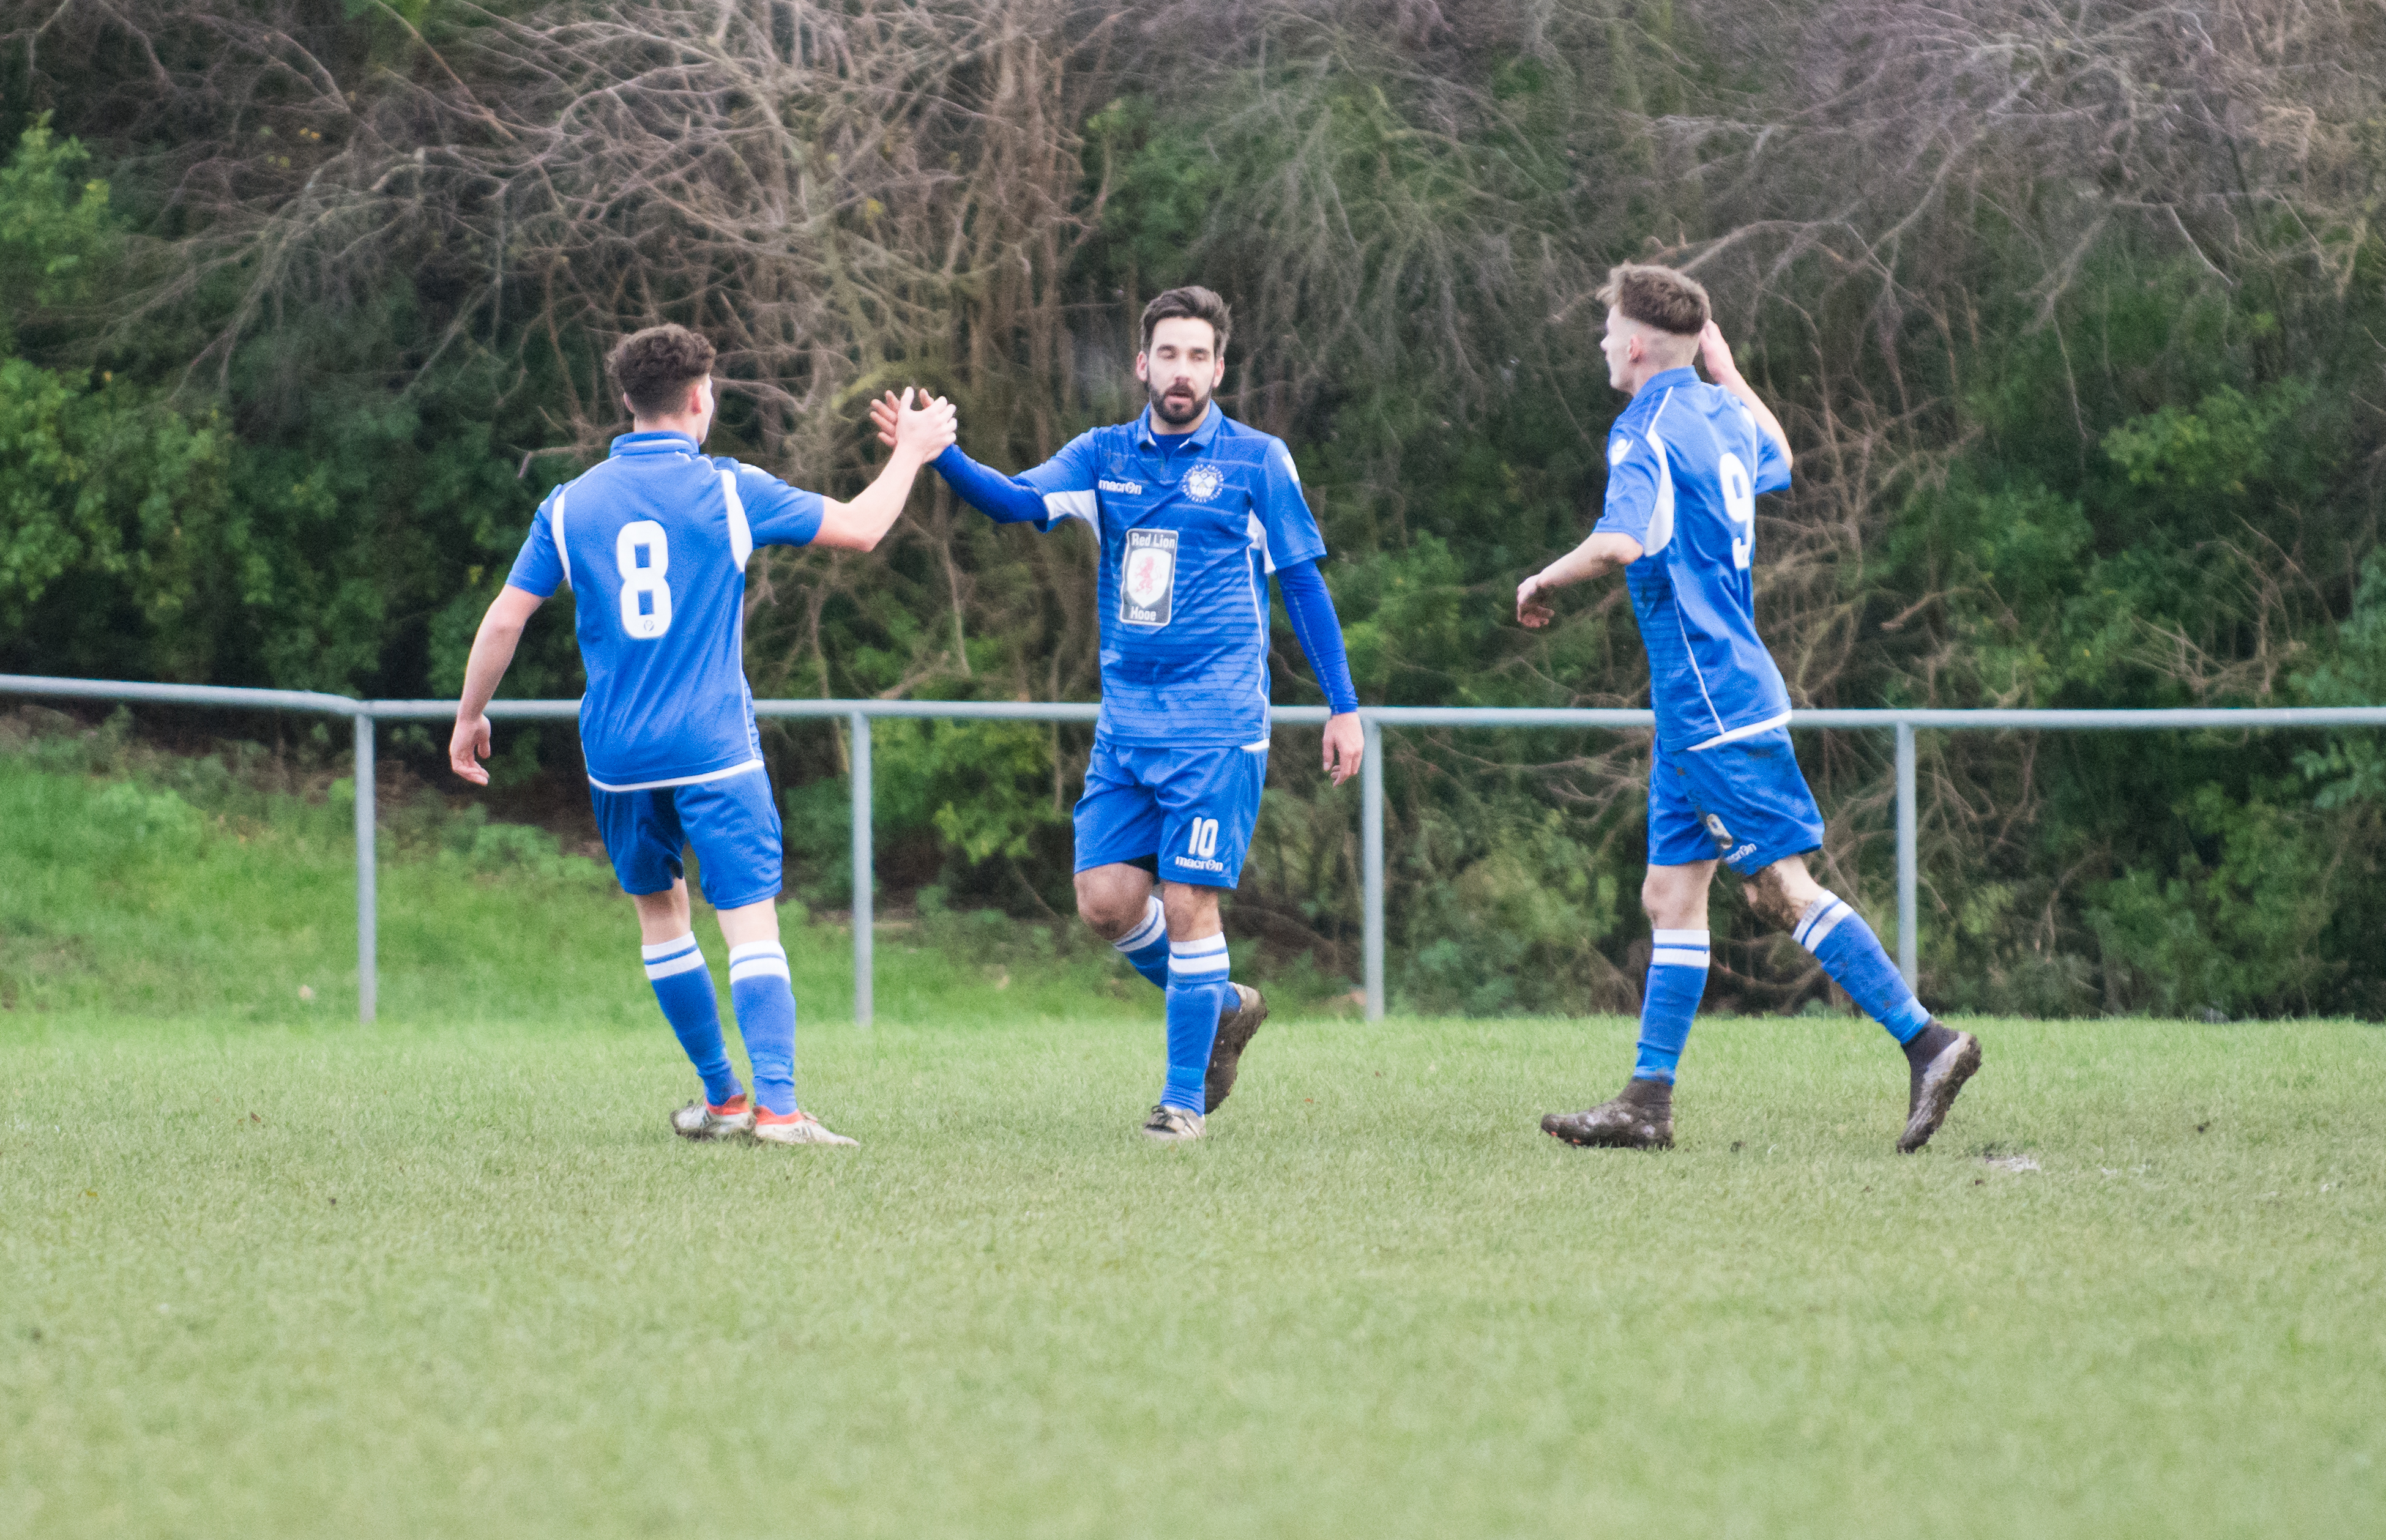 Mile Oak Res vs Sidley United 09.12.17 18